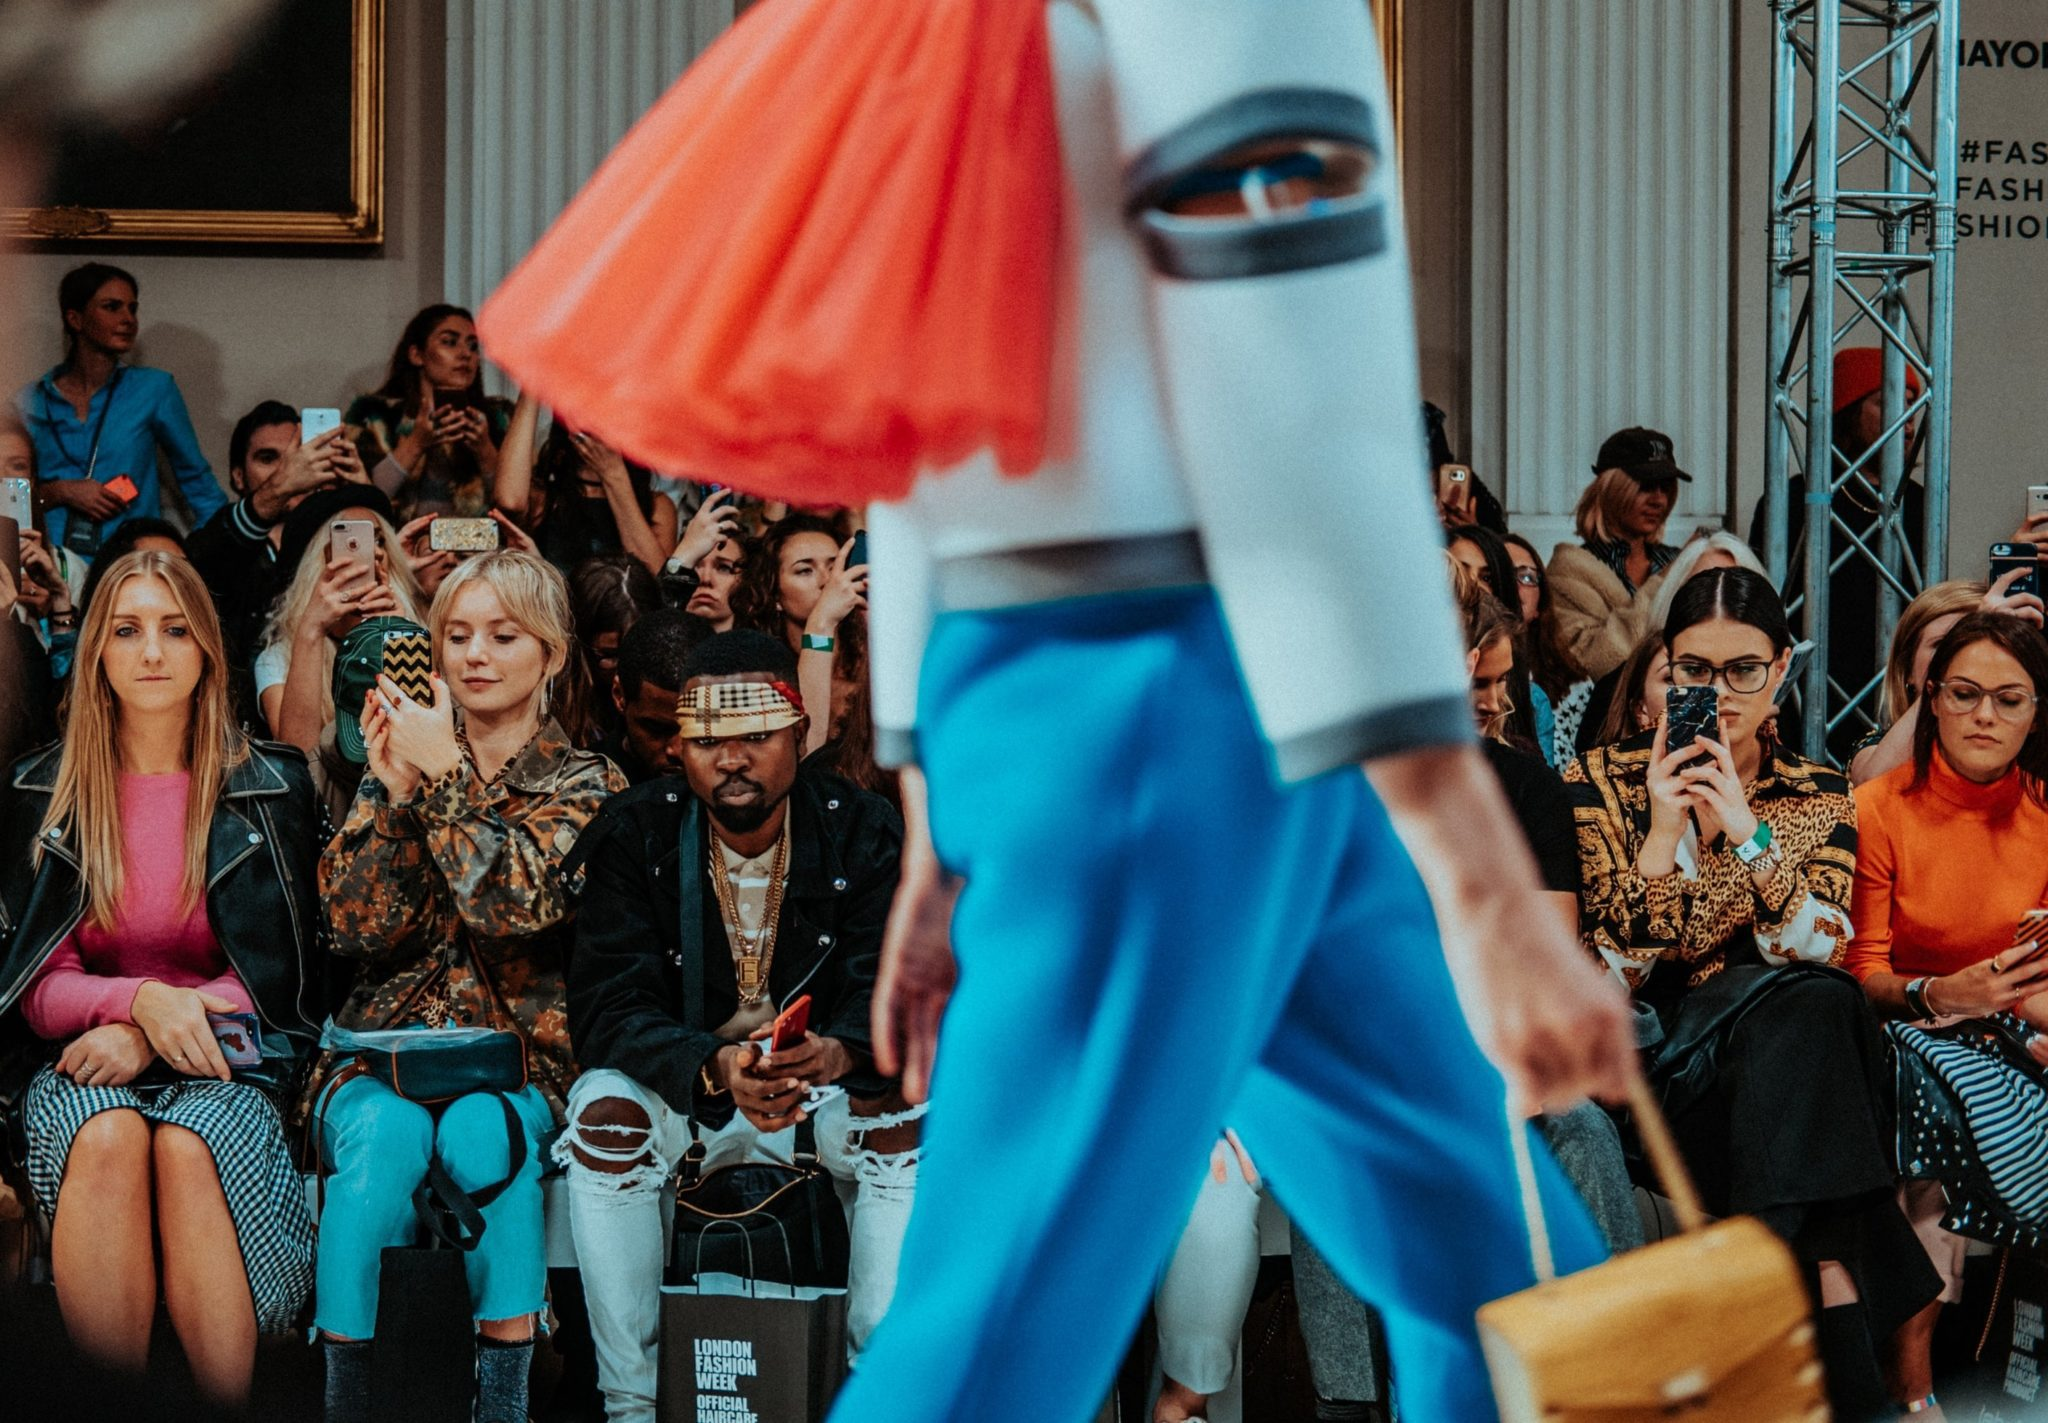 The Ultimate NY Fashion Week Experience - Day 3